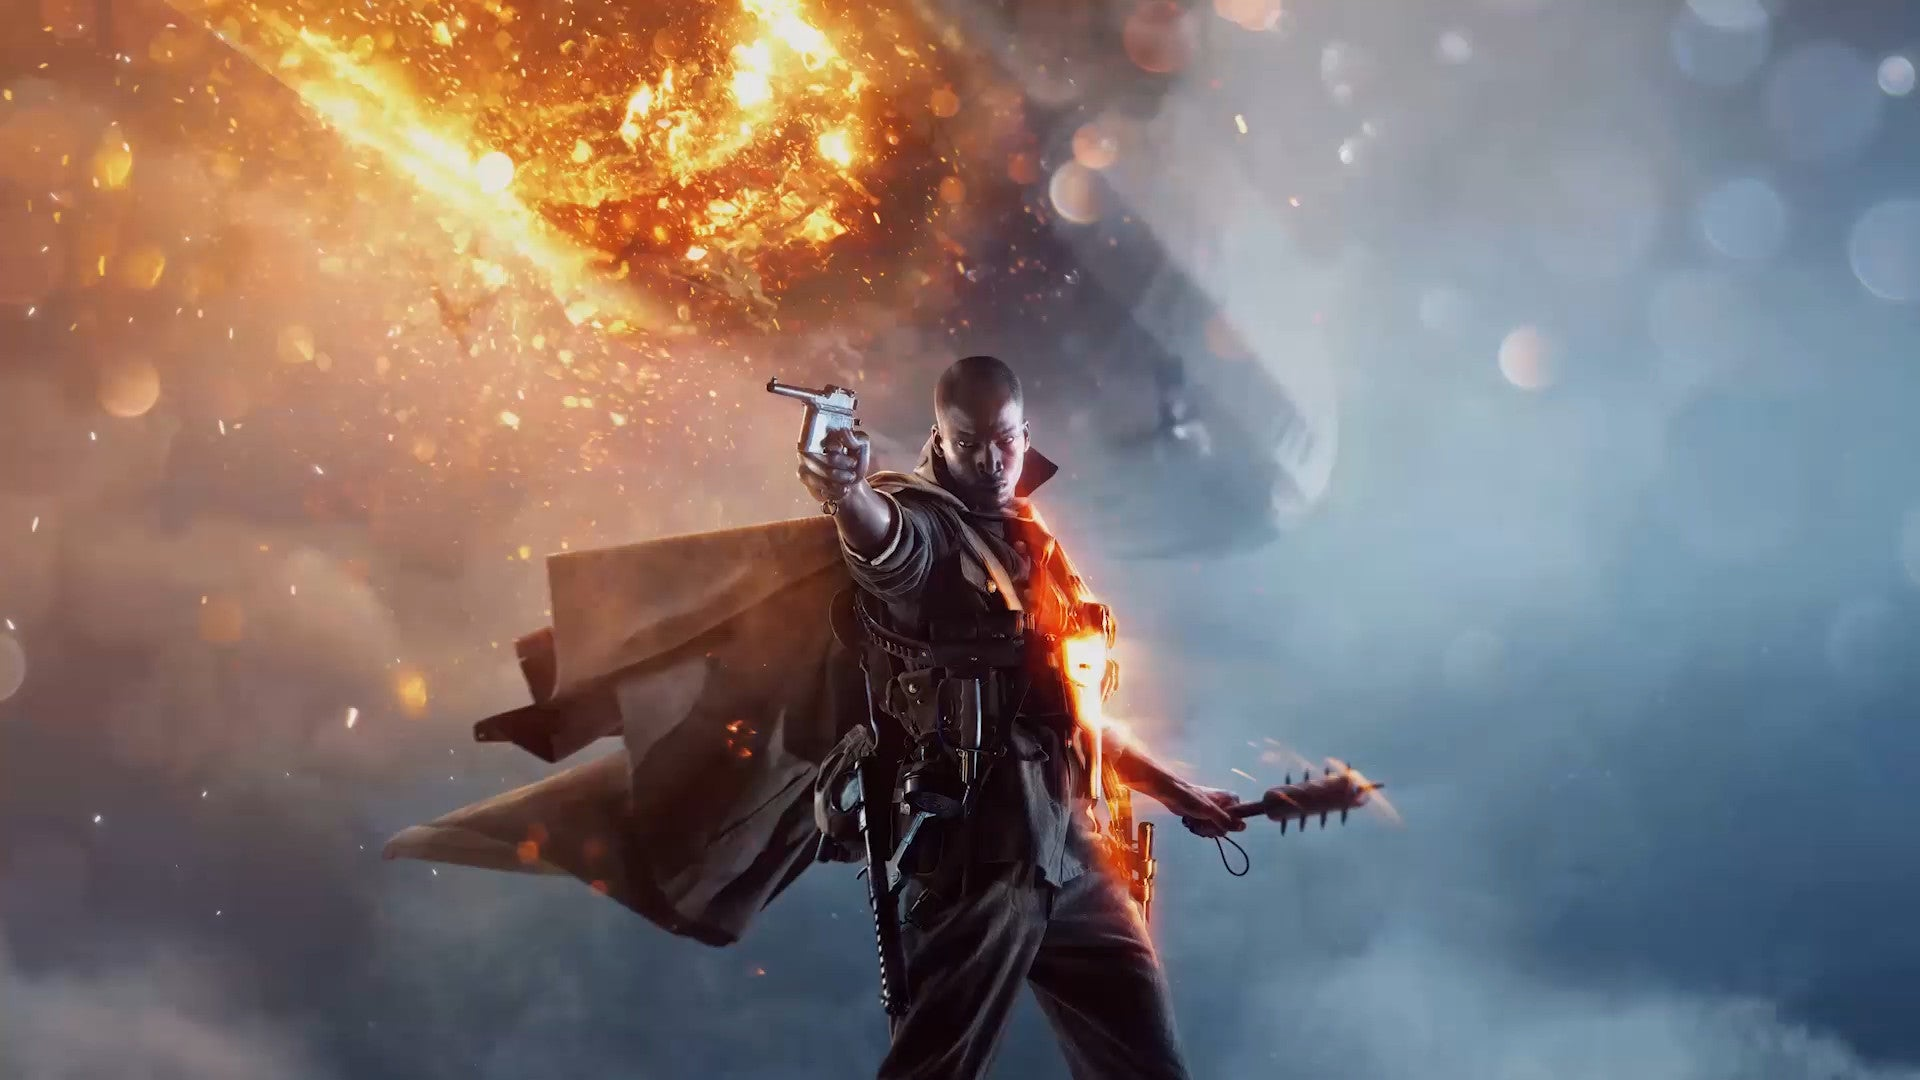 A Beginner's Guide To Battlefield 1 Multiplayer